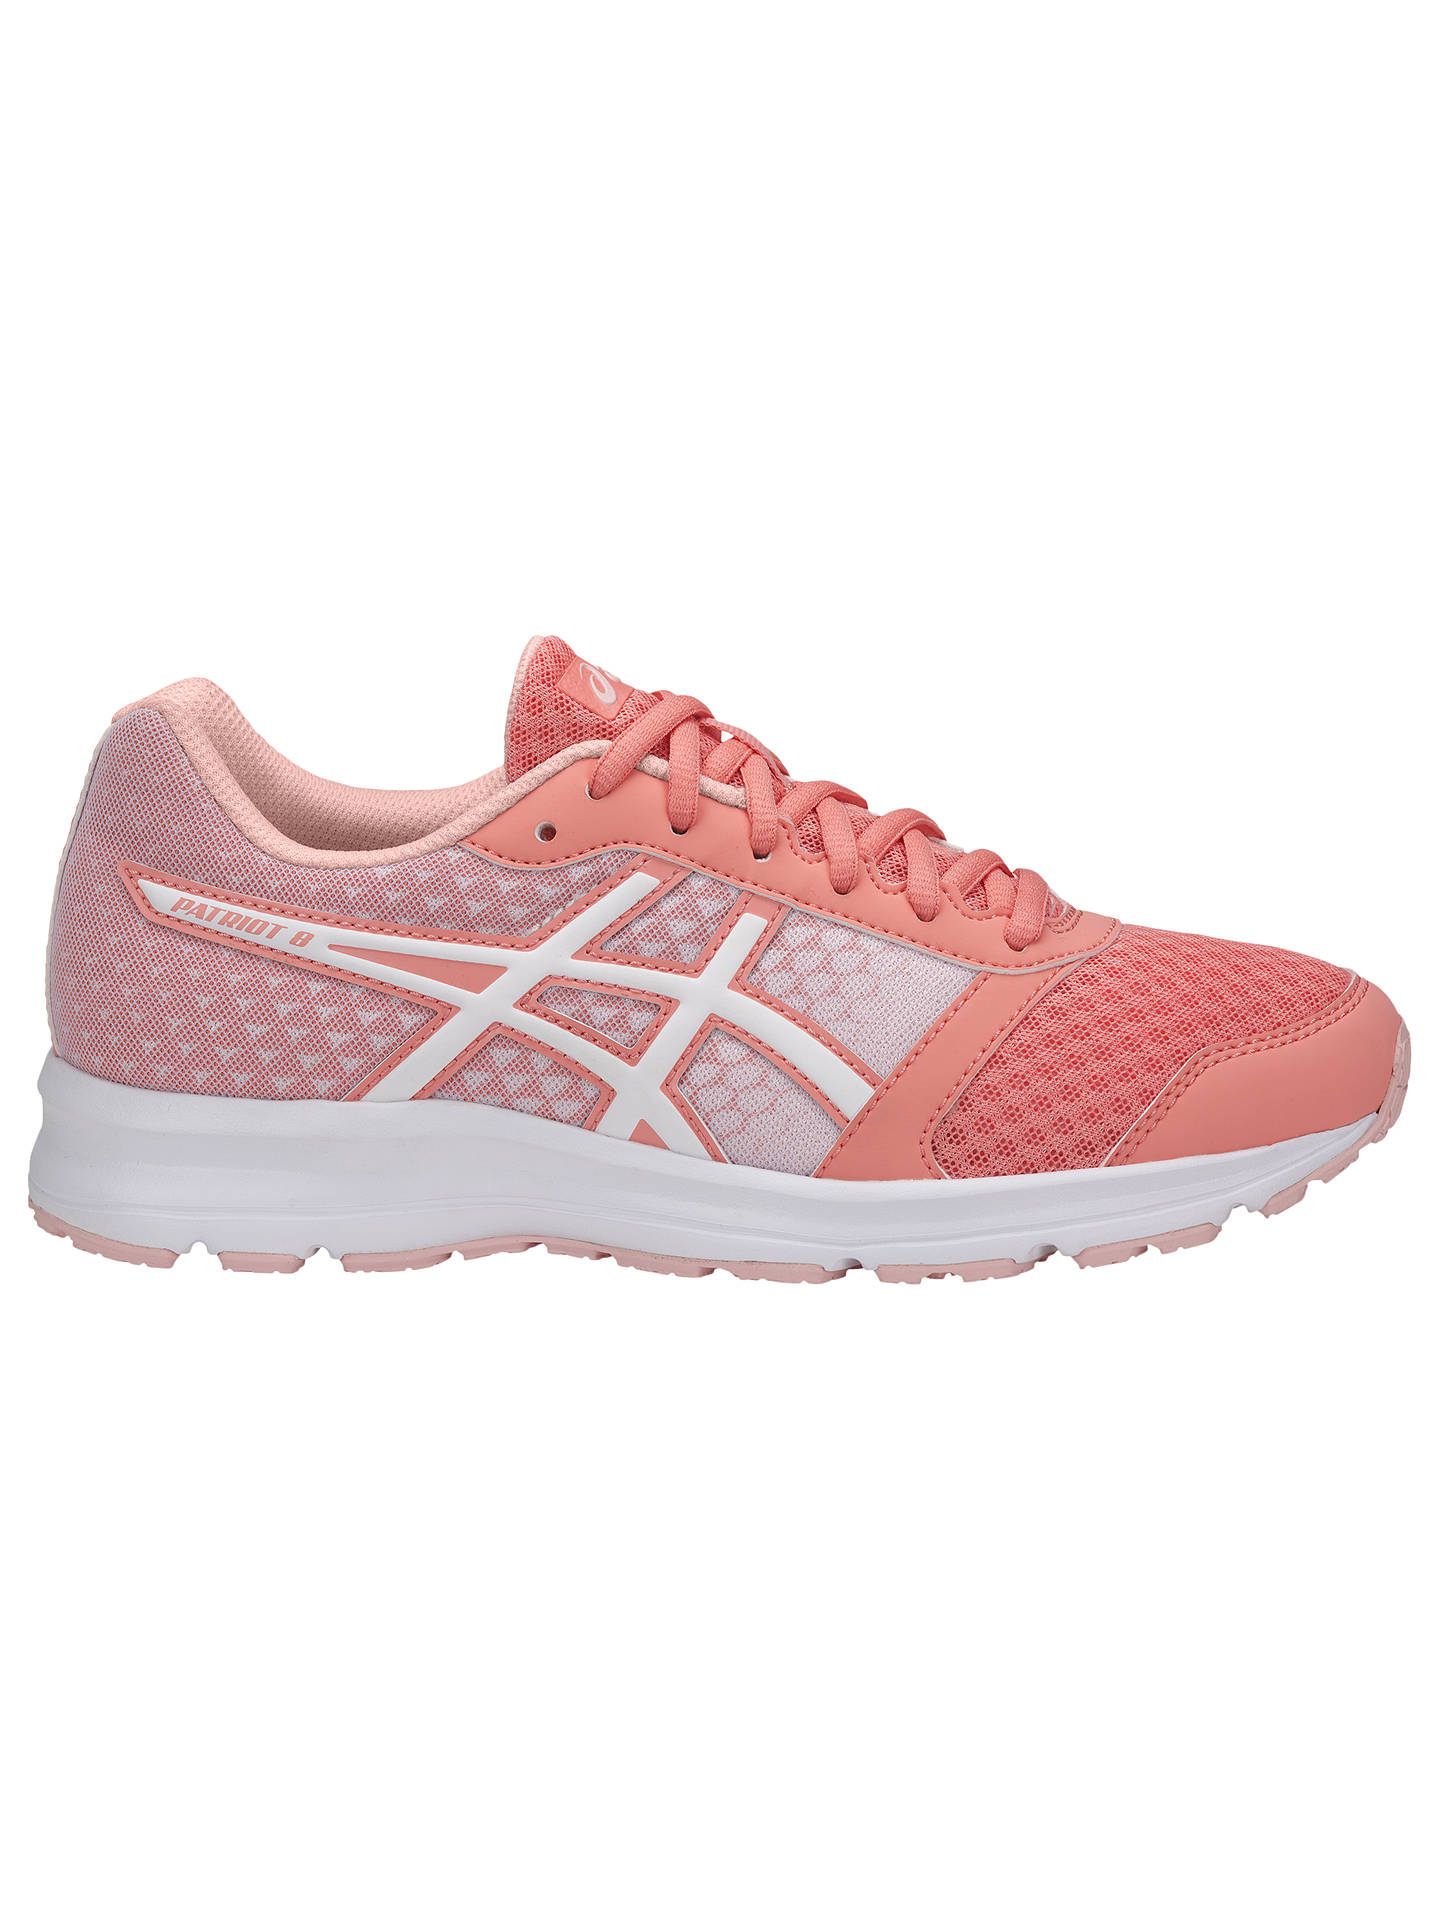 9be447aba36 Asics Patriot 9 Women s Running Shoes at John Lewis   Partners